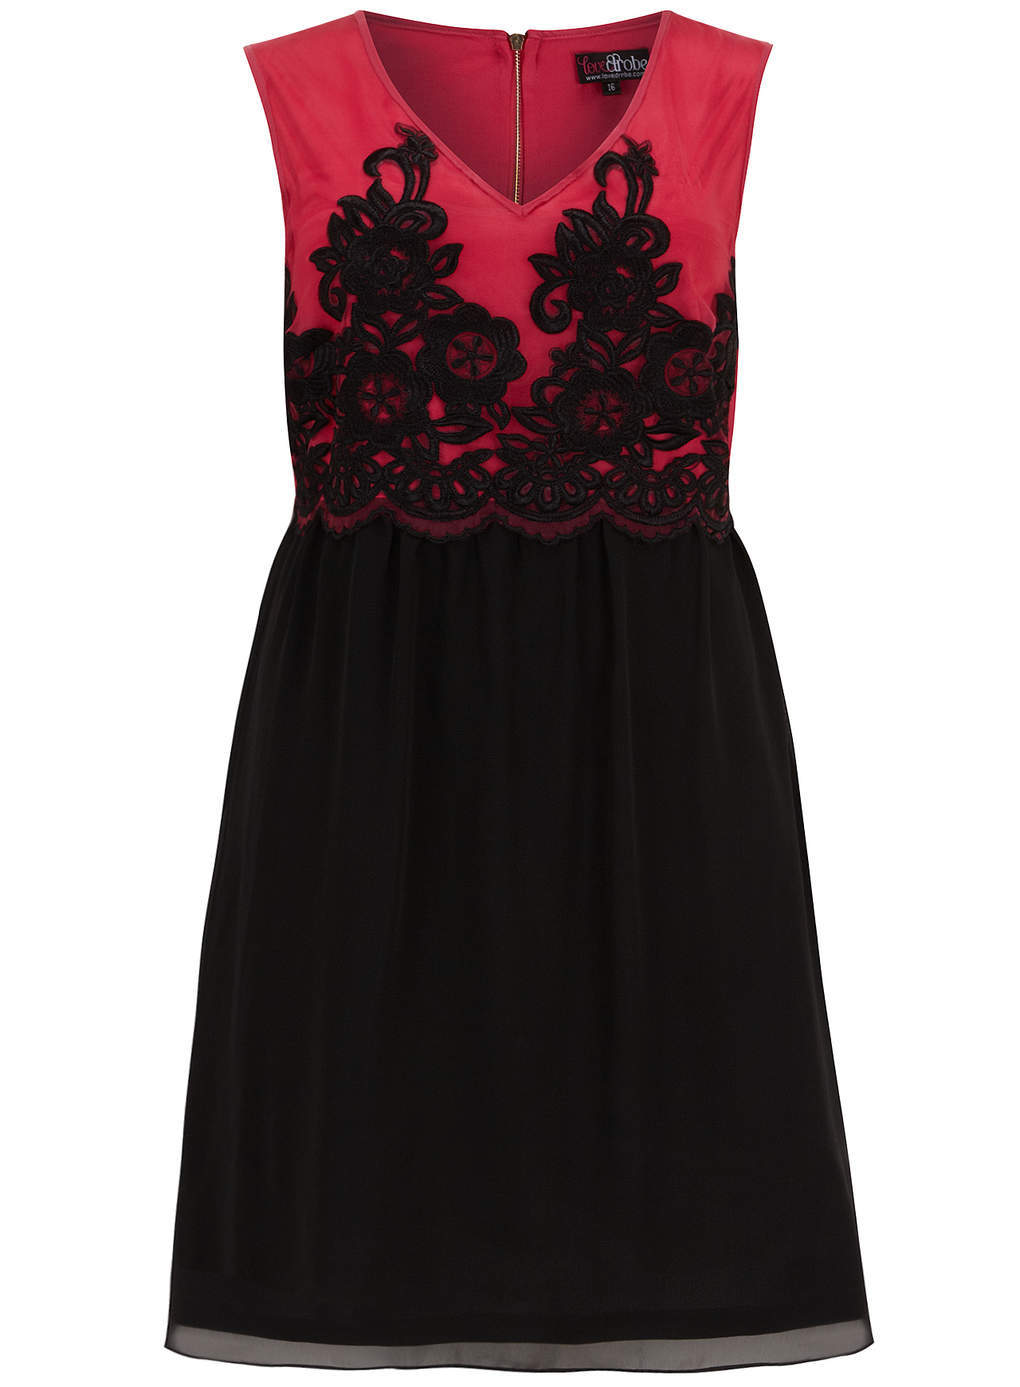 Lovedrobe Black And Pink Embroidered Dress - style: shift; neckline: v-neck; fit: empire; sleeve style: sleeveless; secondary colour: true red; predominant colour: black; occasions: evening; length: just above the knee; fibres: polyester/polyamide - 100%; sleeve length: sleeveless; pattern type: fabric; pattern size: standard; pattern: colourblock; texture group: other - light to midweight; embellishment: embroidered; season: s/s 2014; wardrobe: event; embellishment location: top